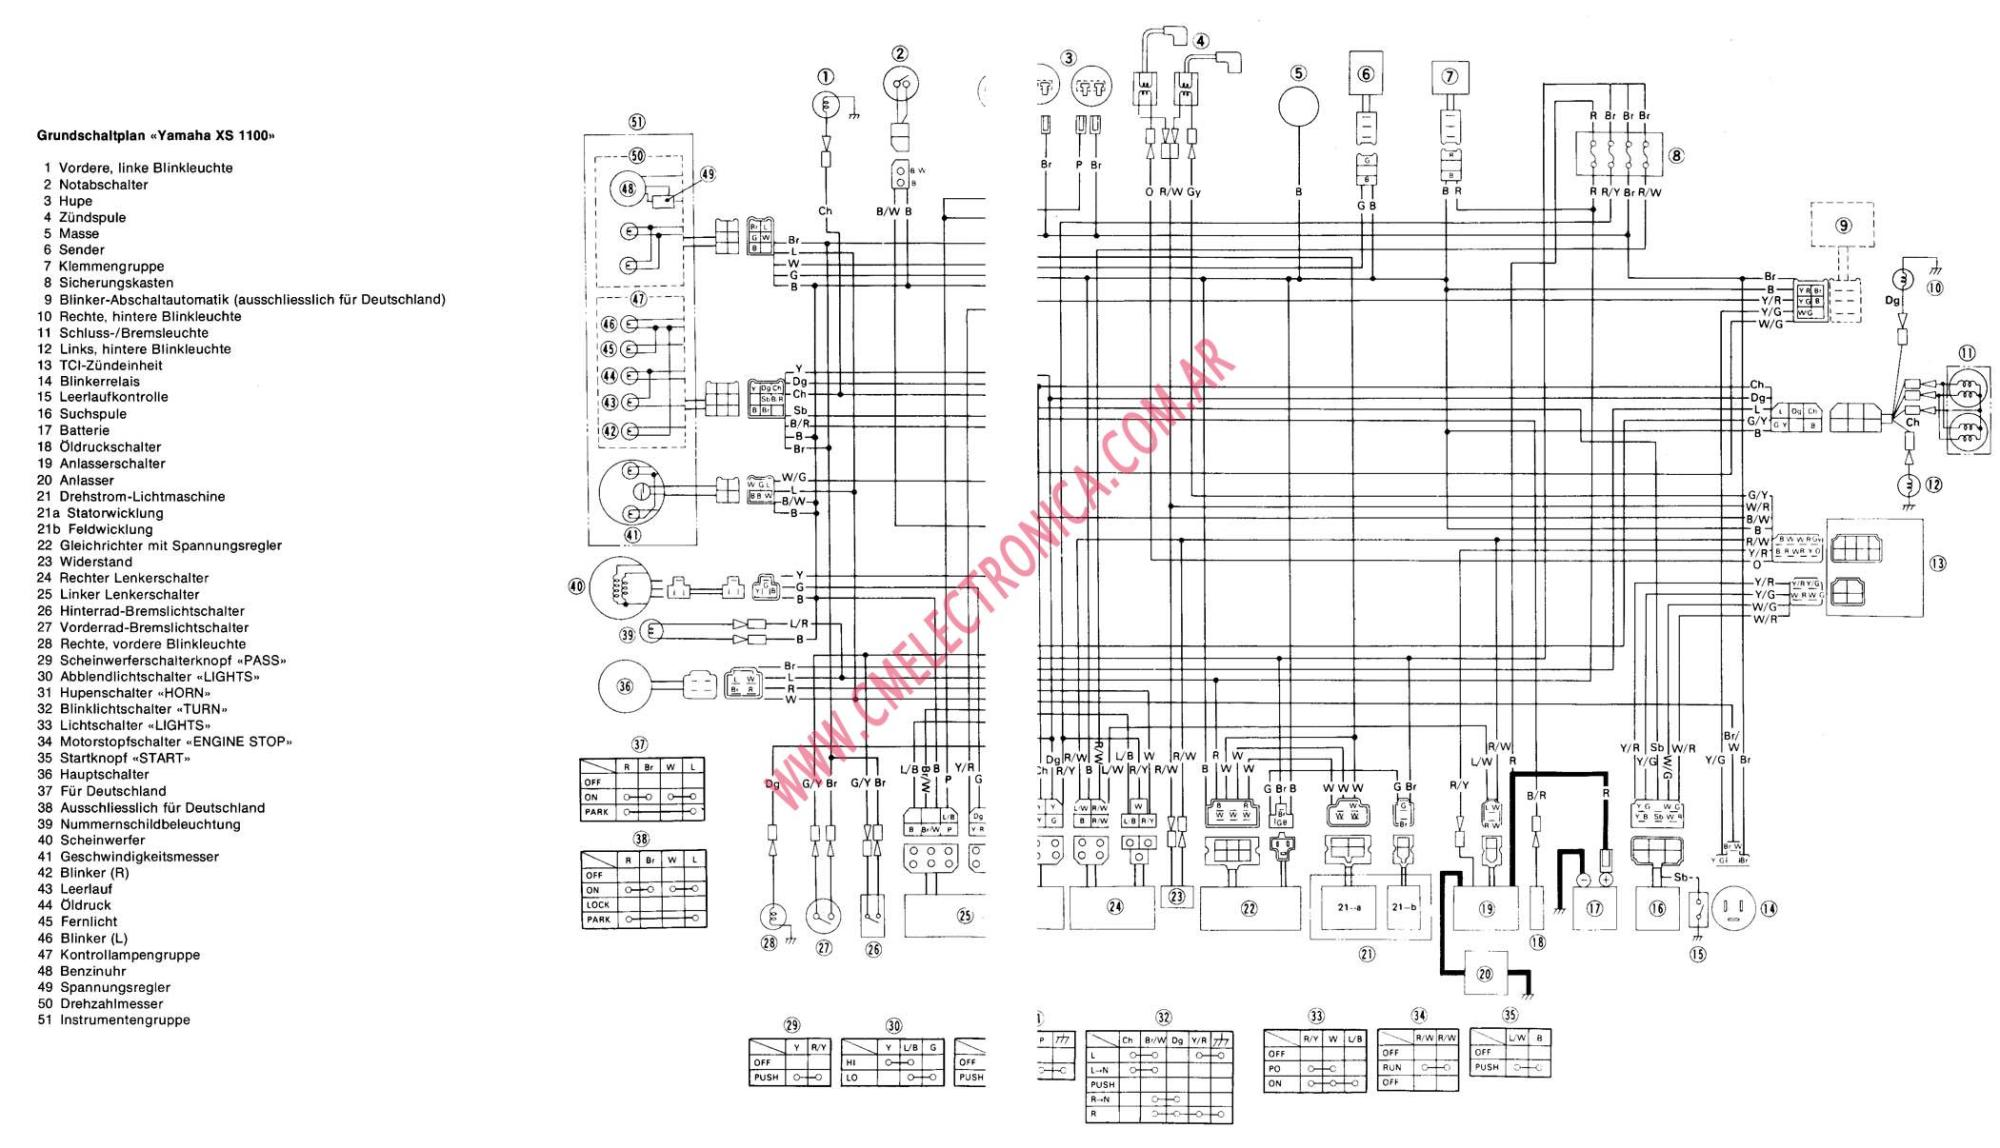 hight resolution of yamaha xs1100 factory owners repair manual 1978 1982 1978 xs1100 wiring diagram 1979 xs1100 wiring diagram